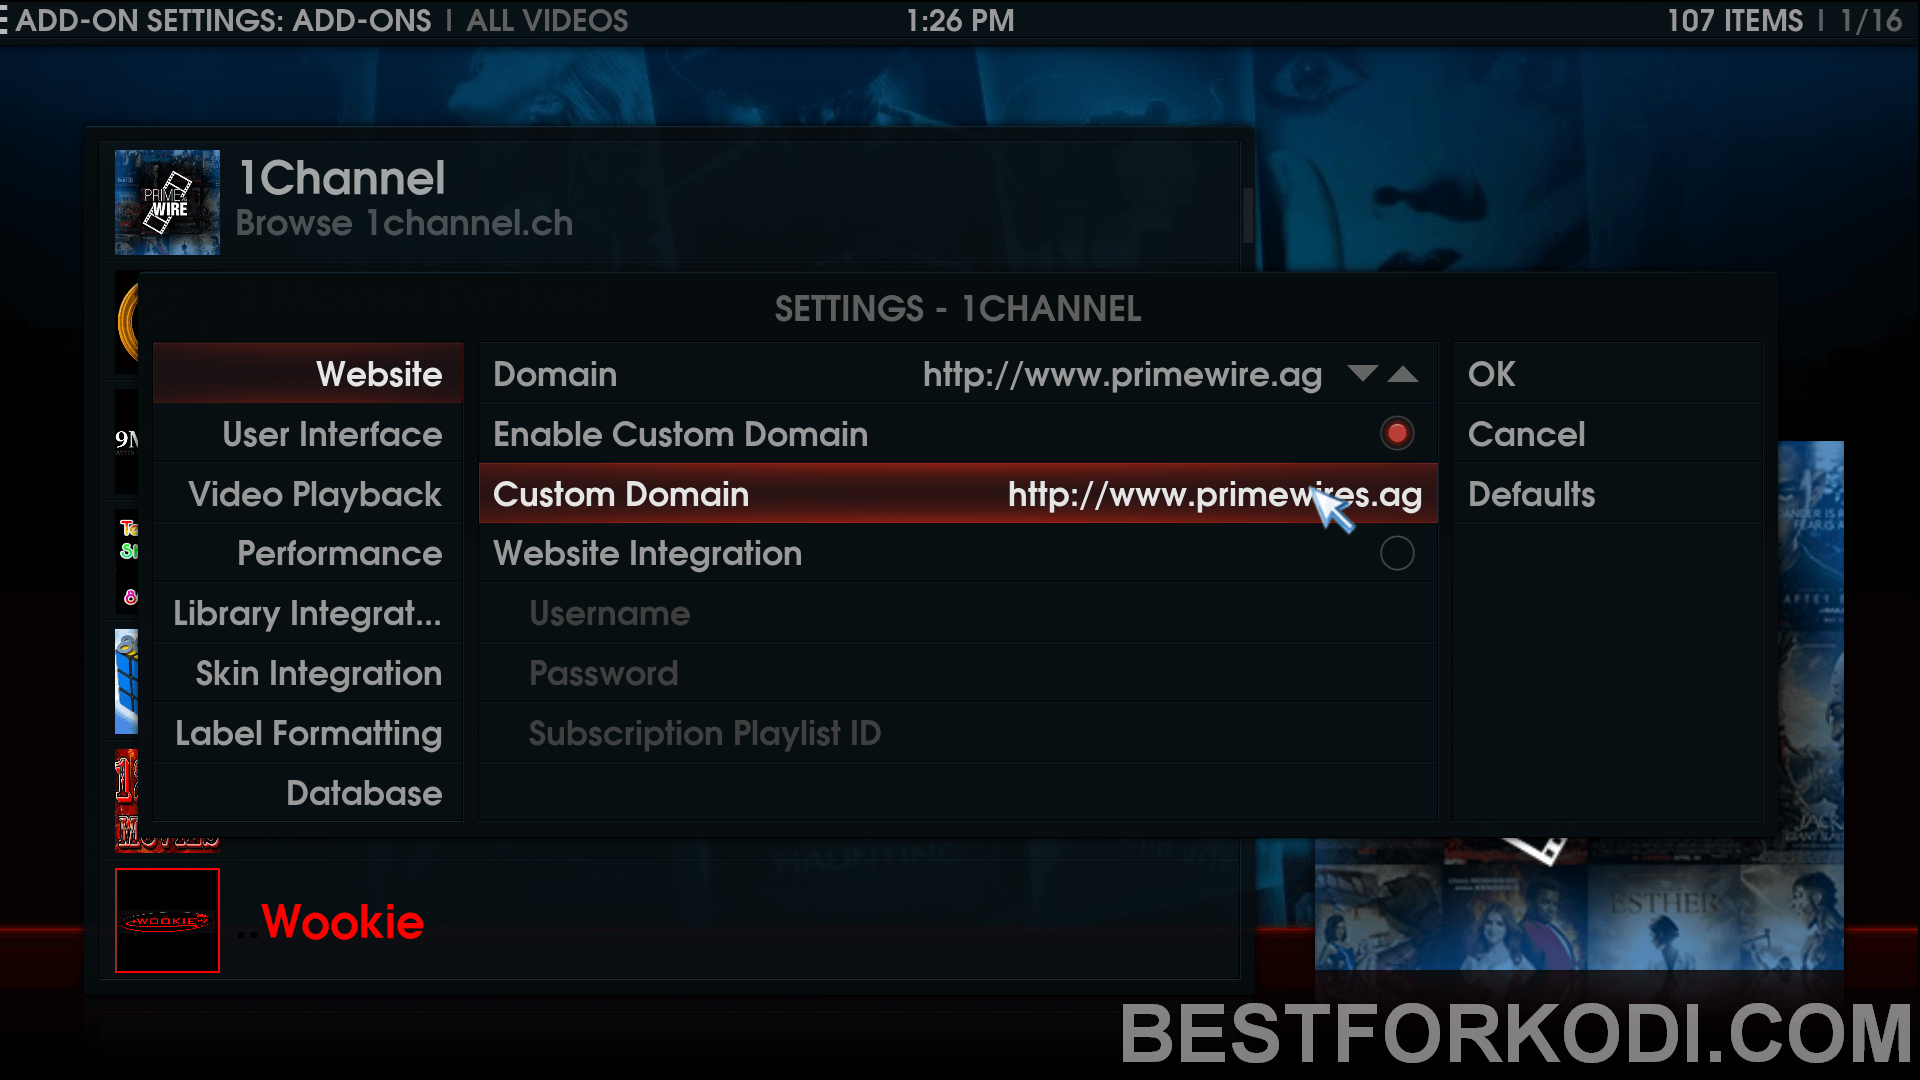 Install Primewire addon to work in UK - Best for Kodi